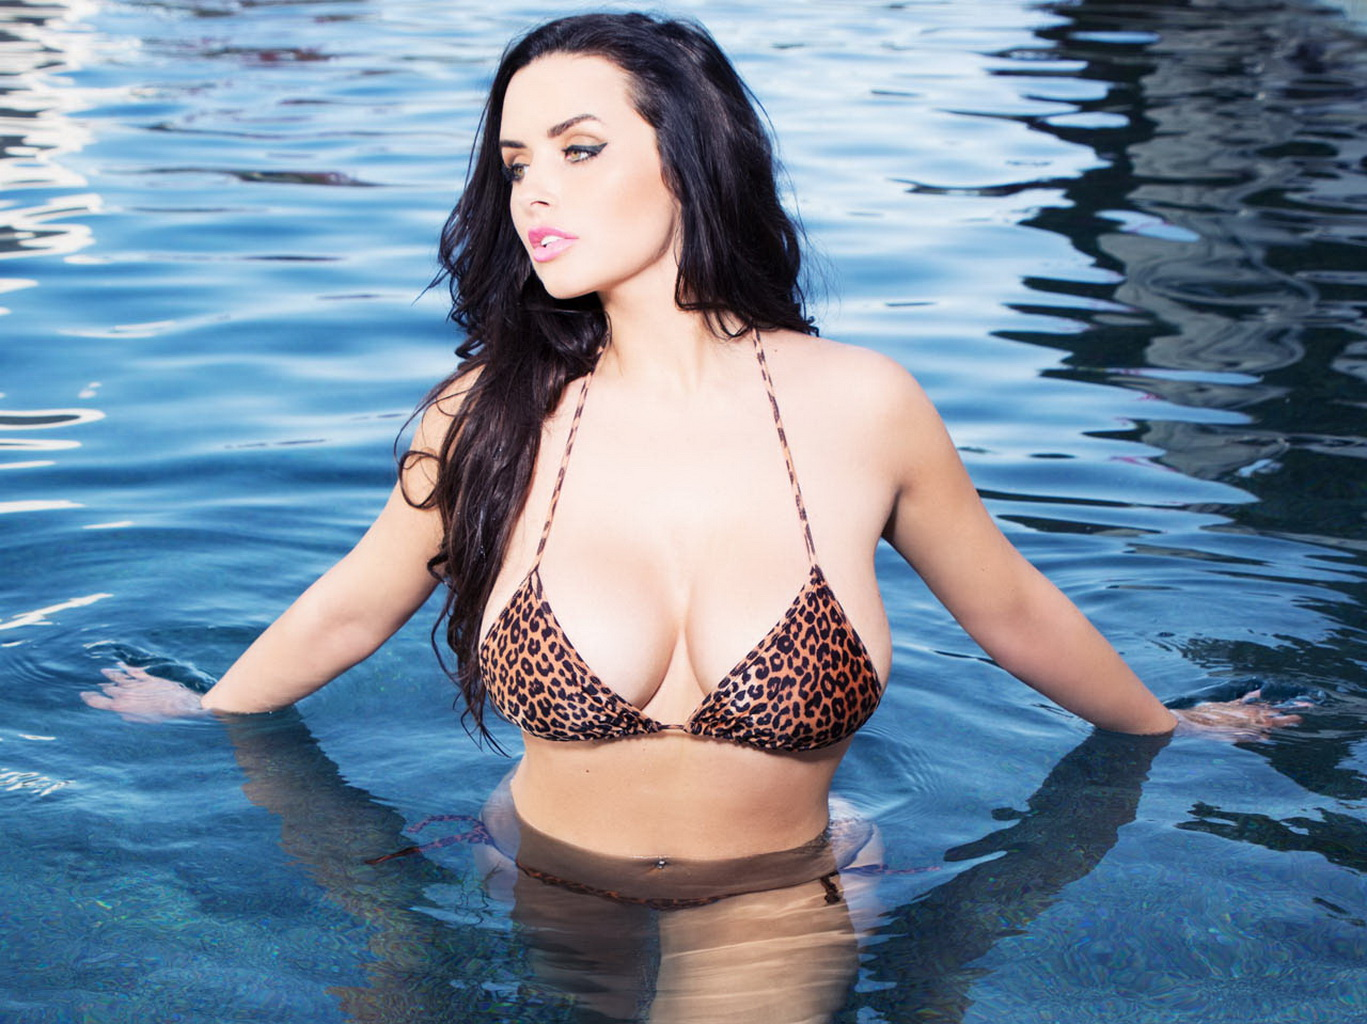 abigail ratchford showing off her hot bikini body at the pool during a